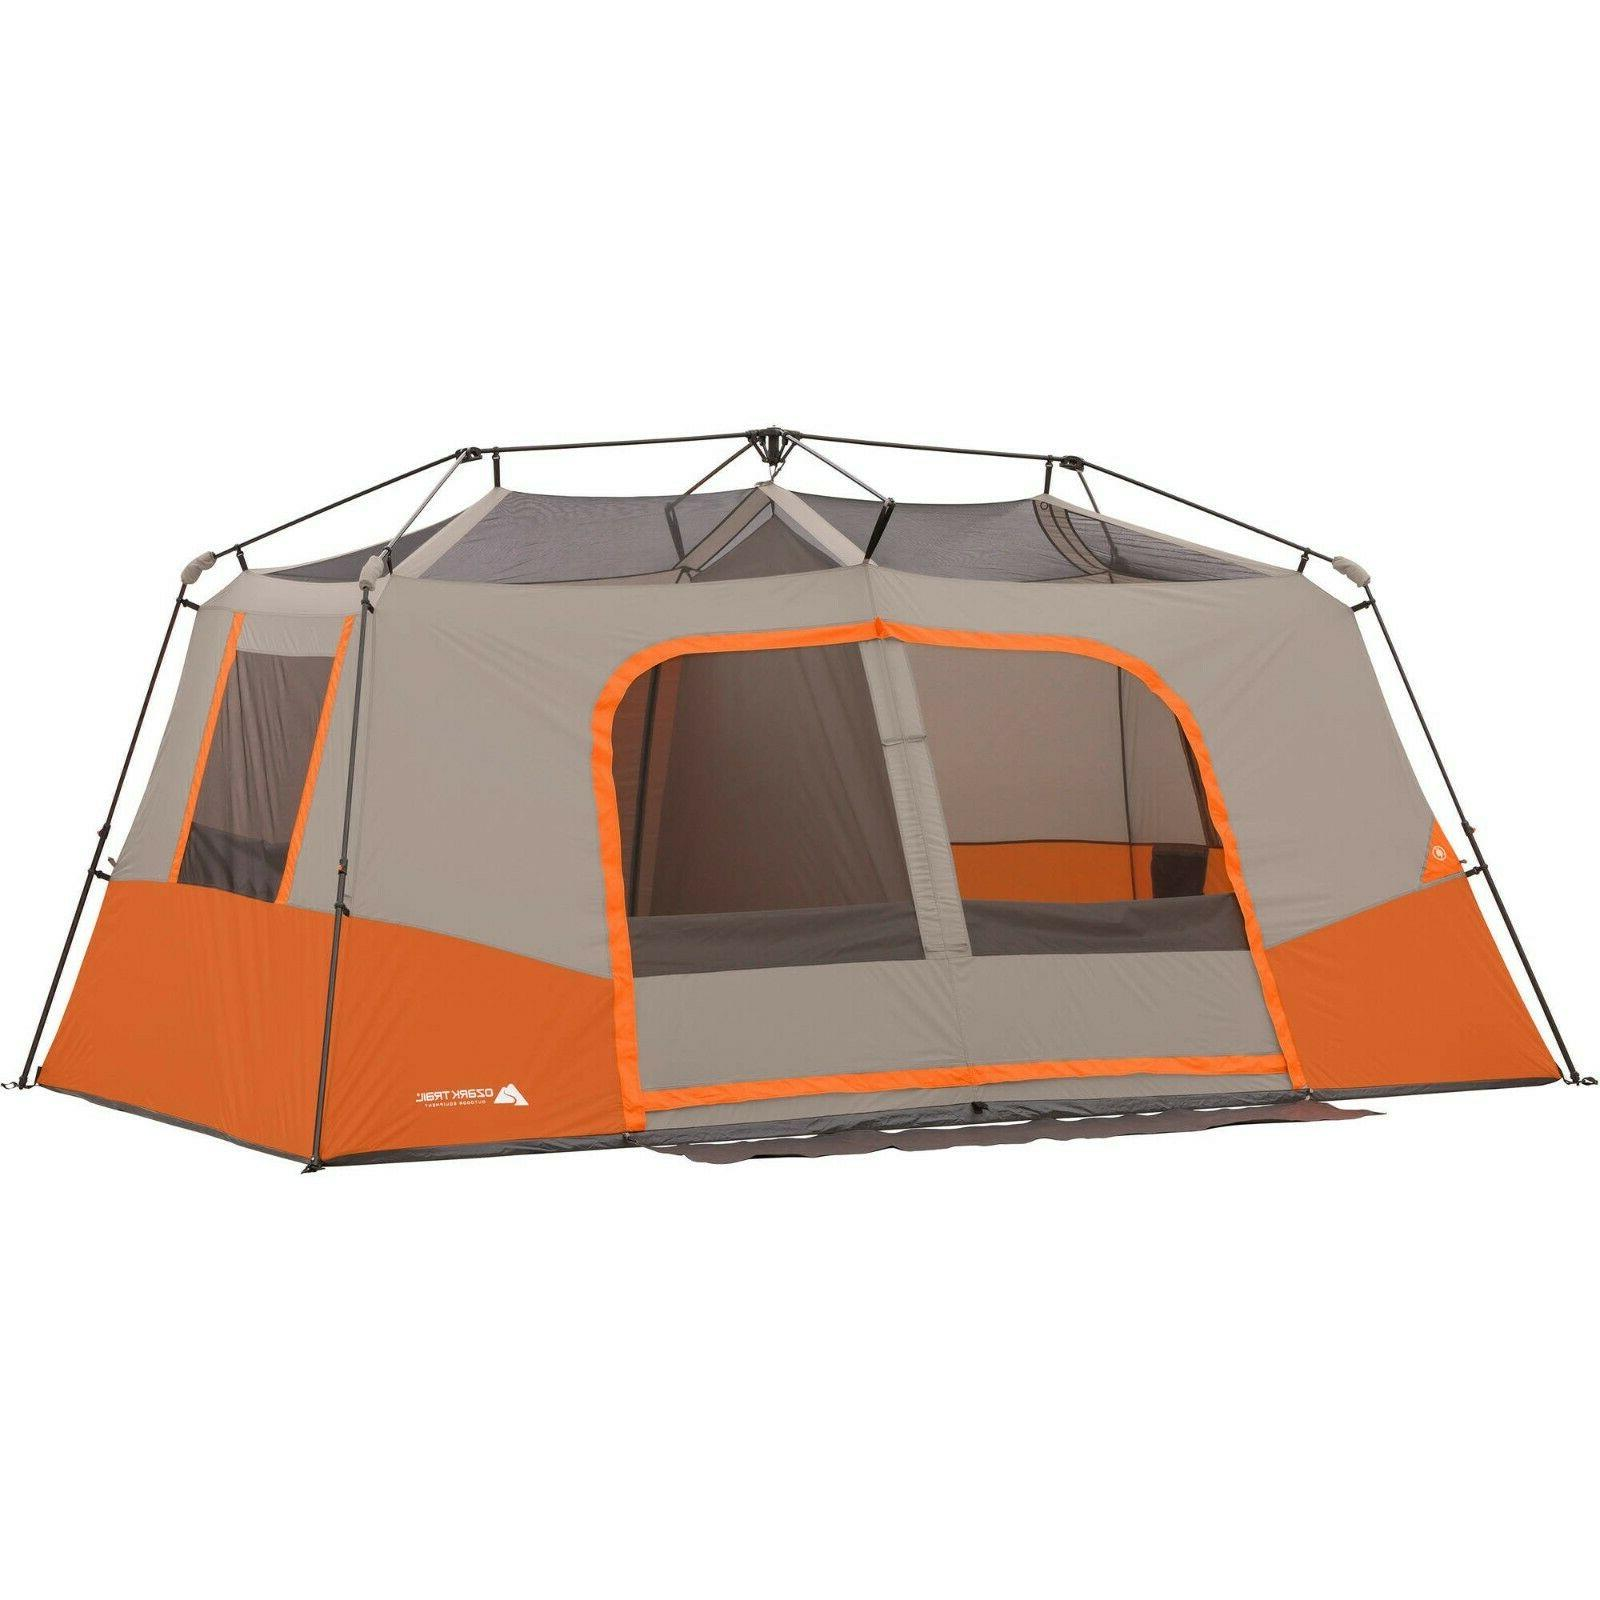 Large 11 Cabin Tent 3 Rooms All Season Camping Hiking NEW